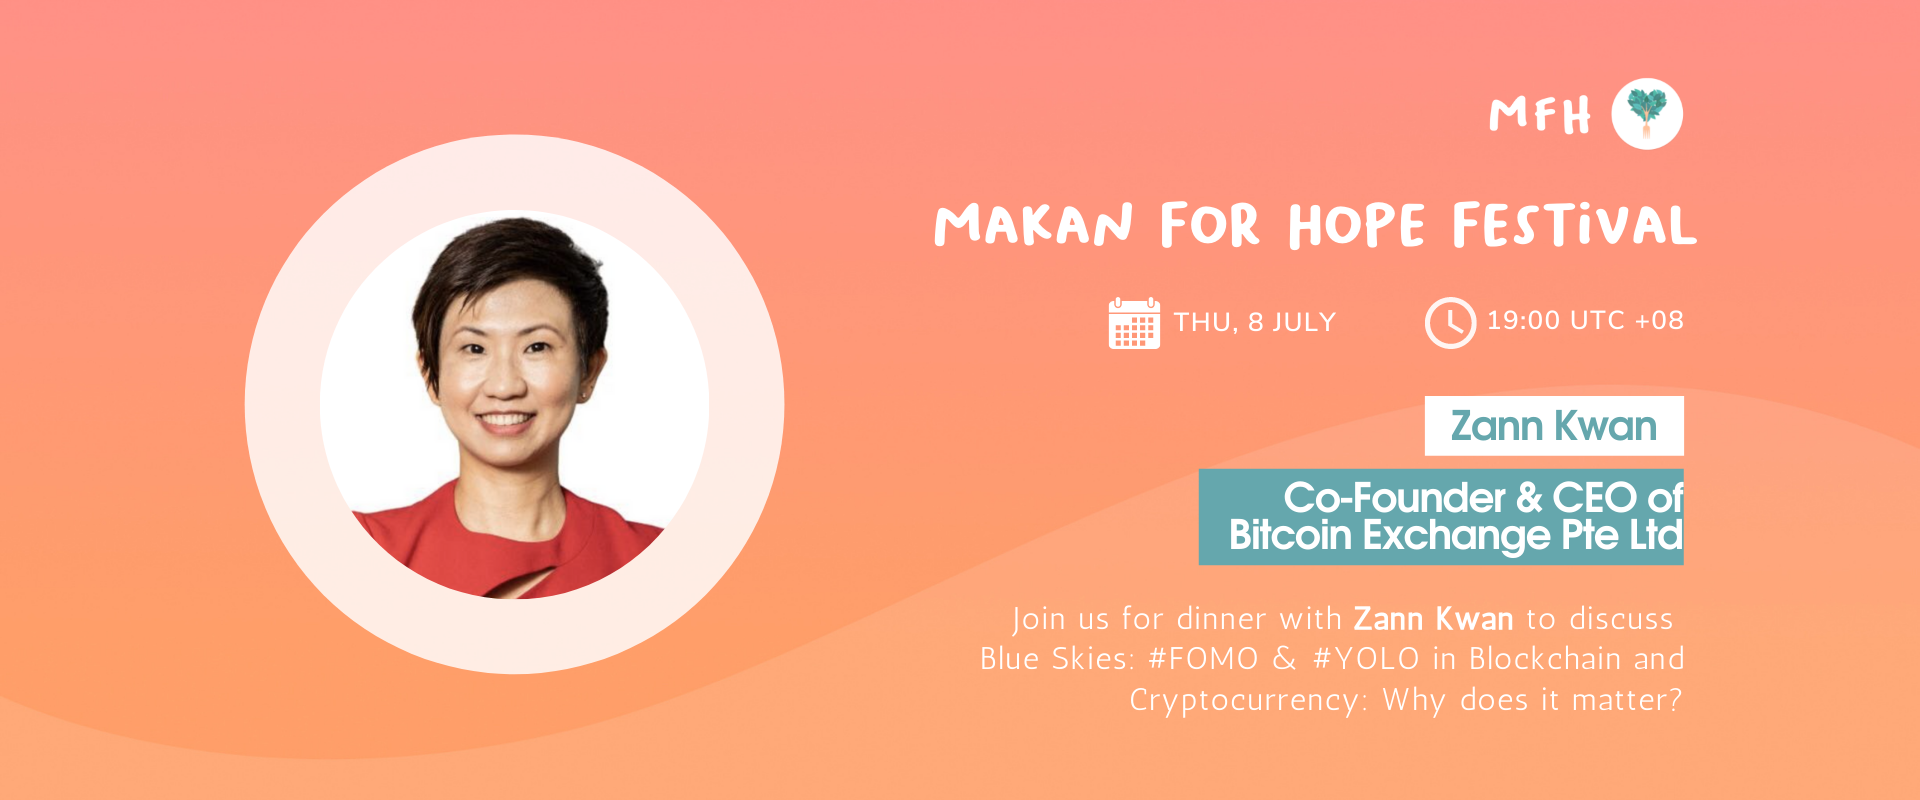 Zann Kwan - Blue Skies: #FOMO & #YOLO in Blockchain and Cryptocurrency: Why does it matter?